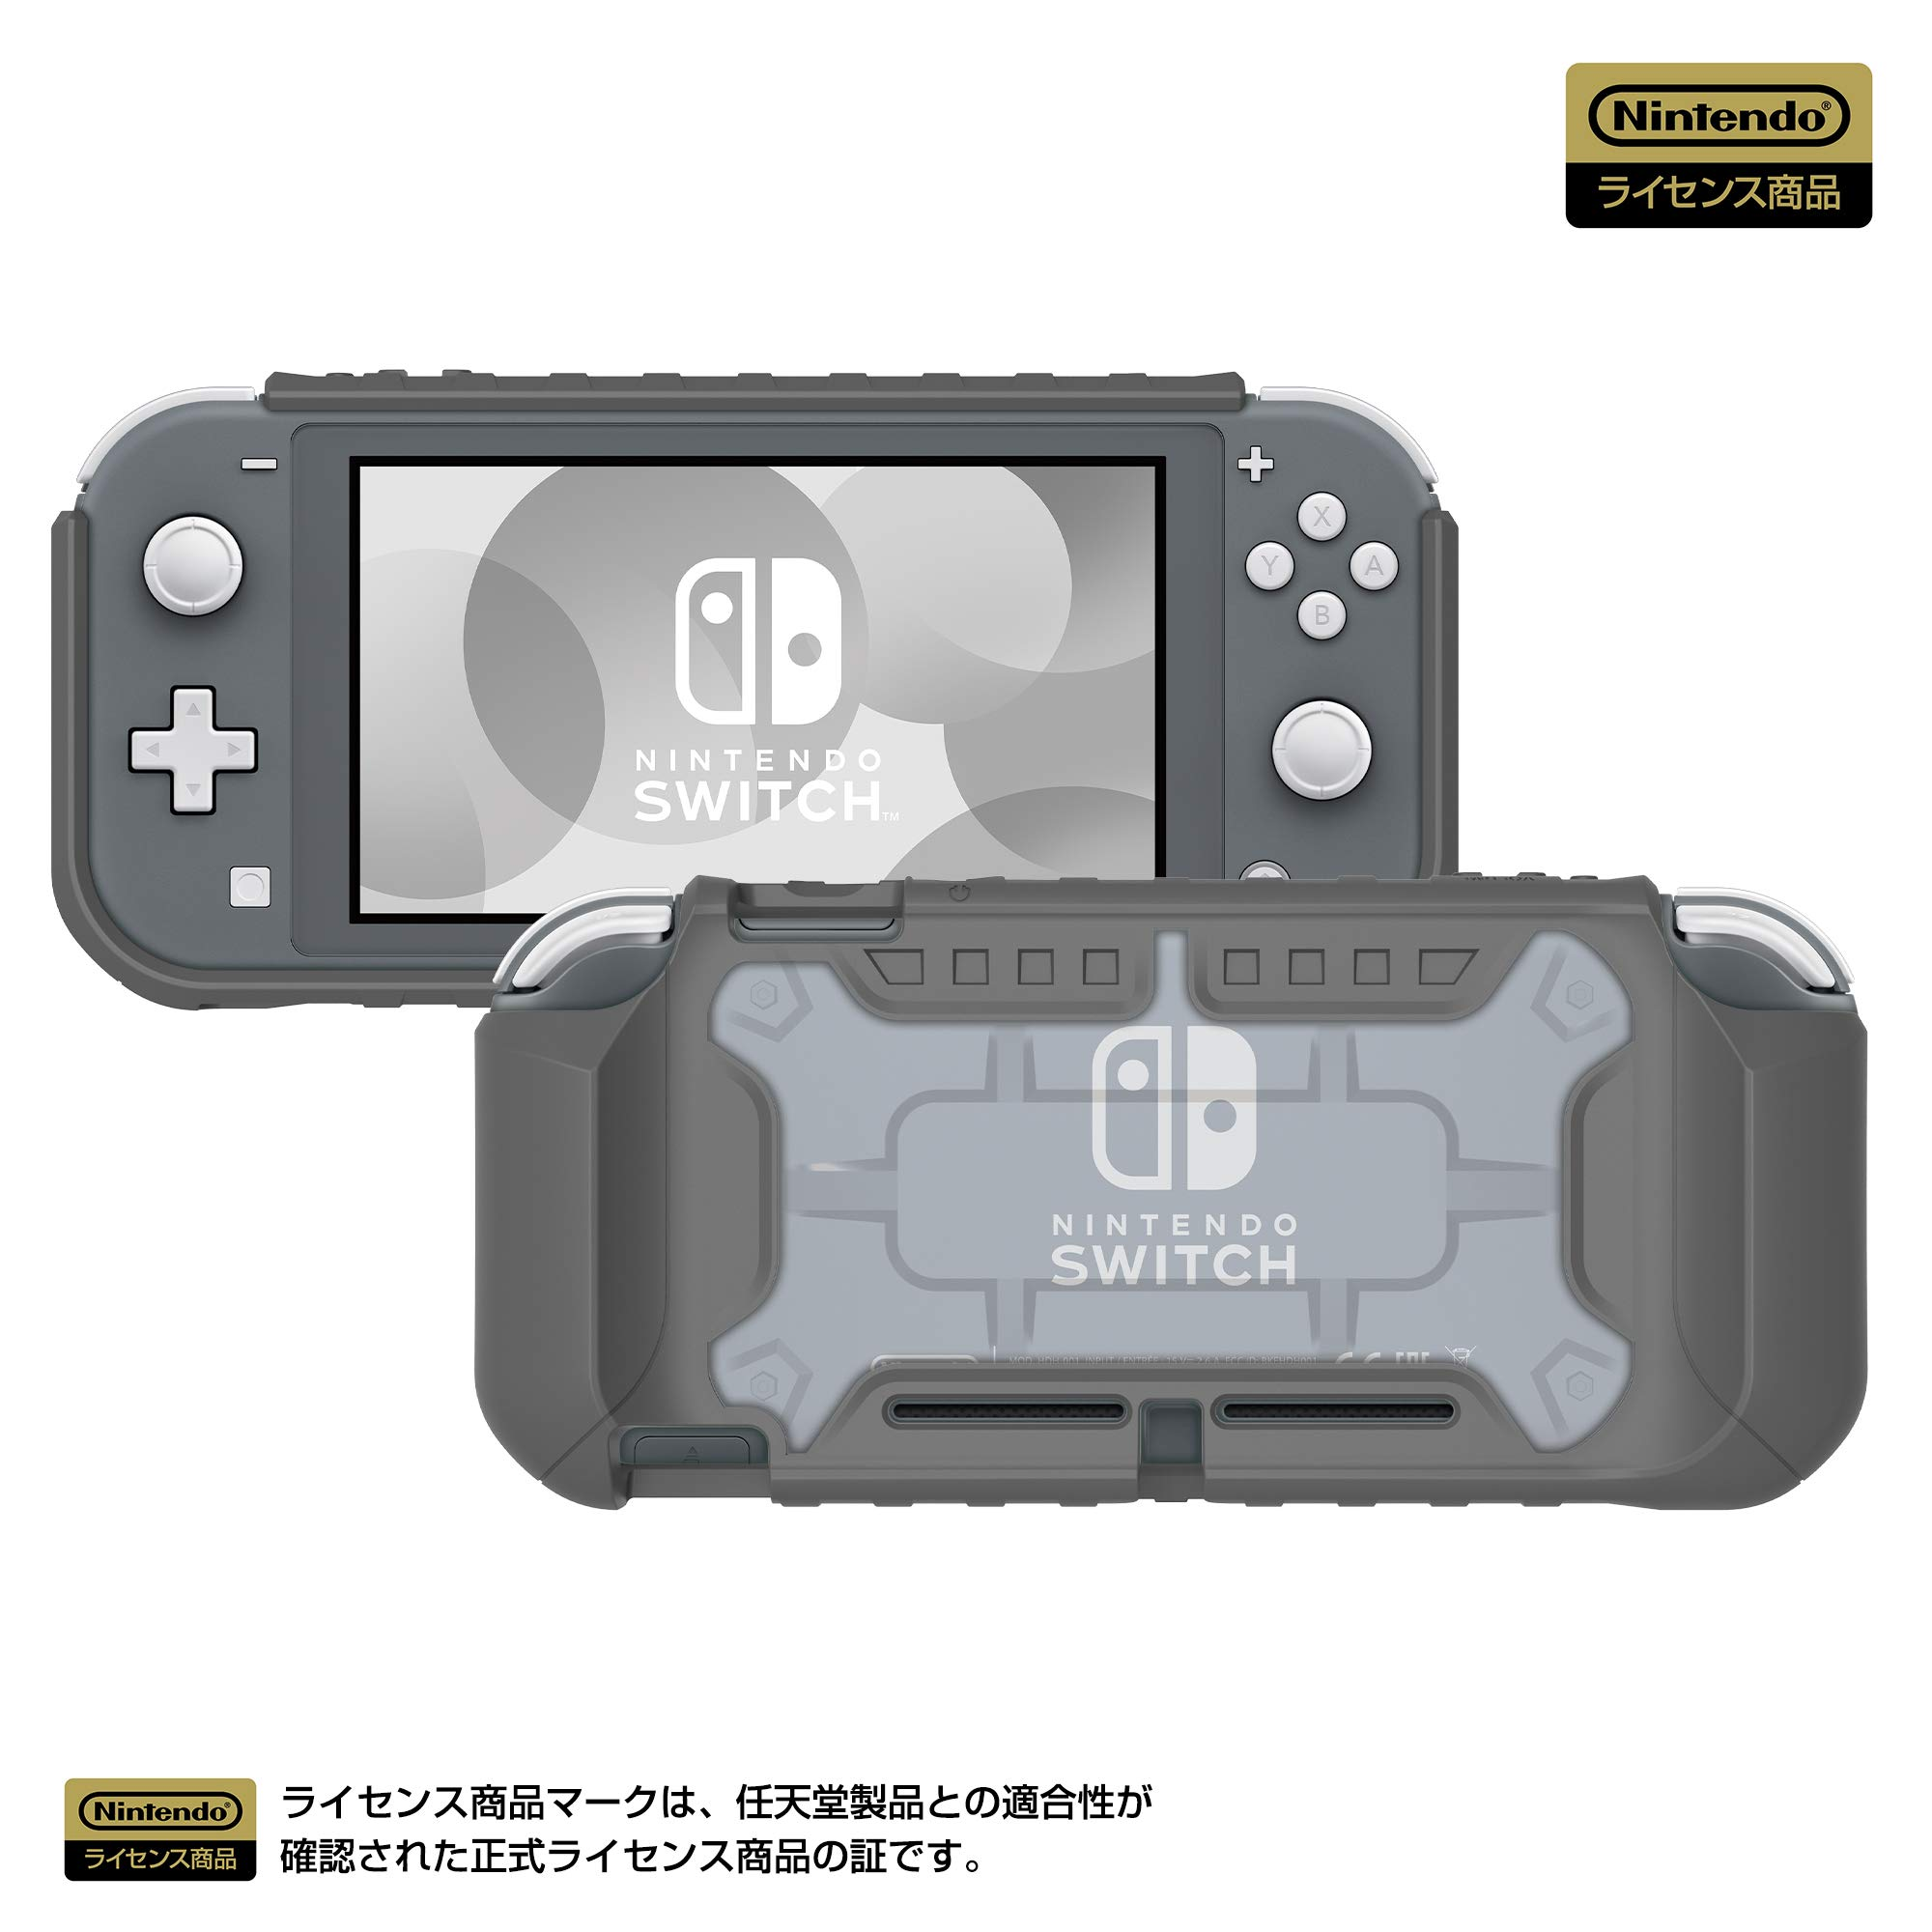 Hori [Nintendo Licensed Products] Tough Protector for Nintendo ...